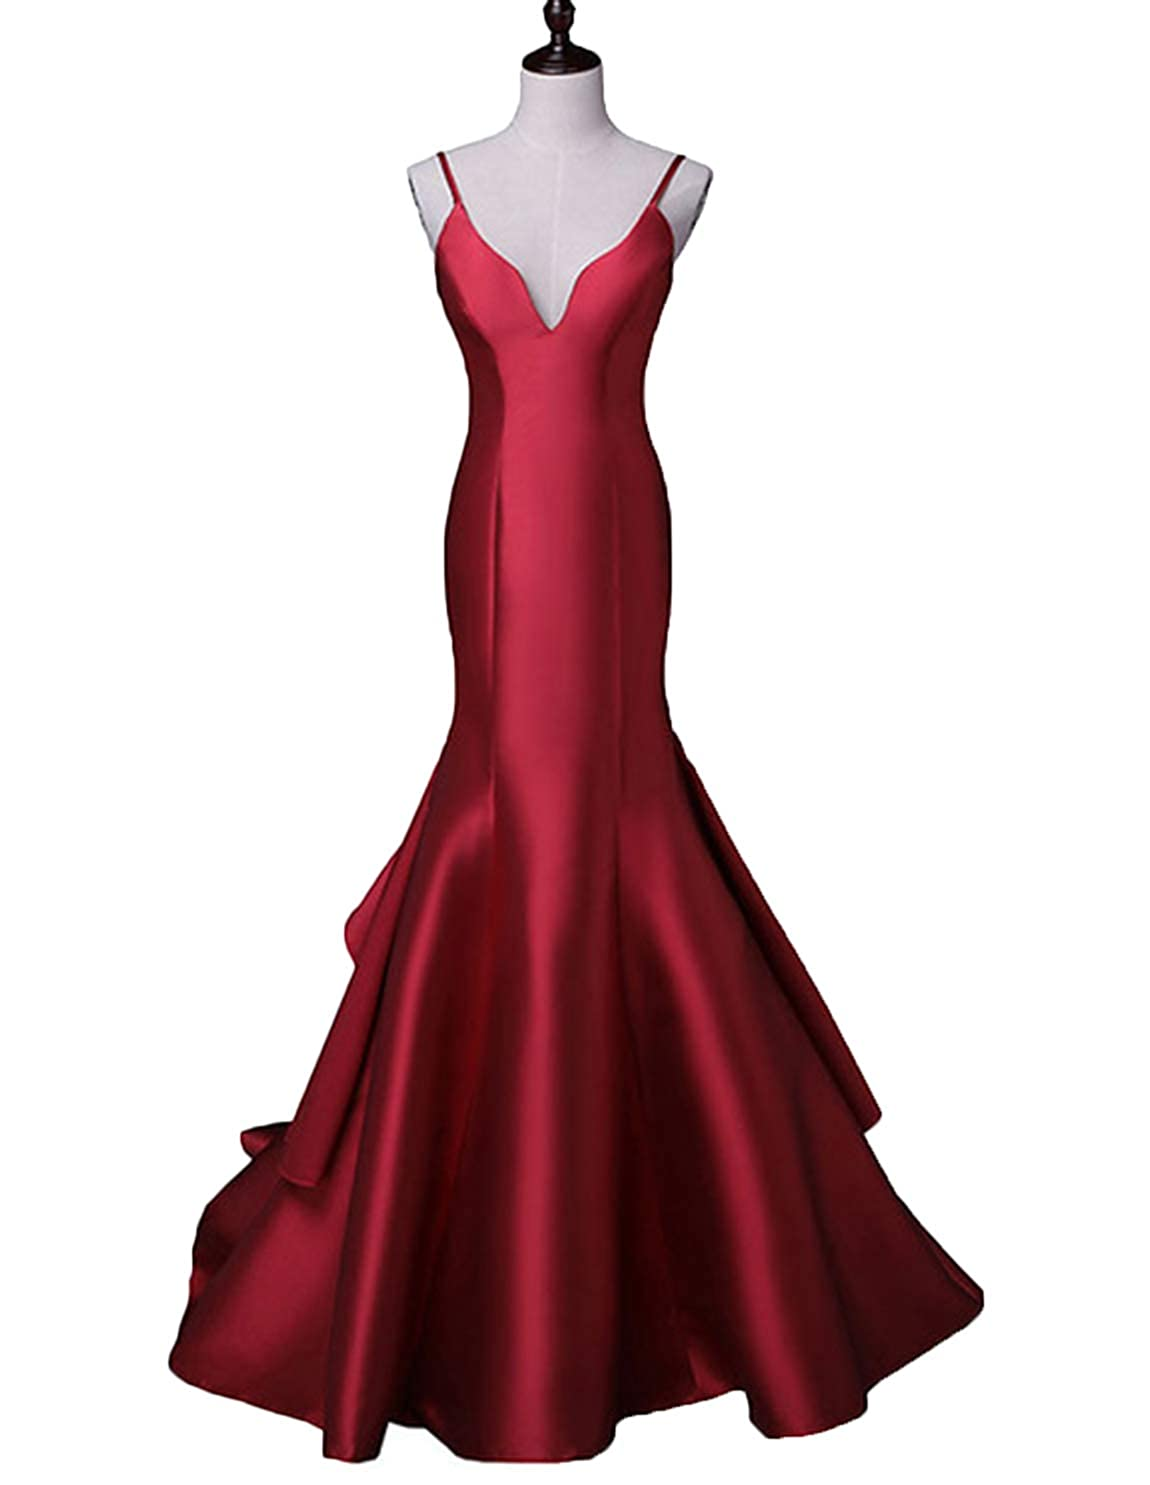 Burgundystraps Scarisee Women's Sweetheart Mermaid Prom Evening Party Dresses Tiered FormalSA51